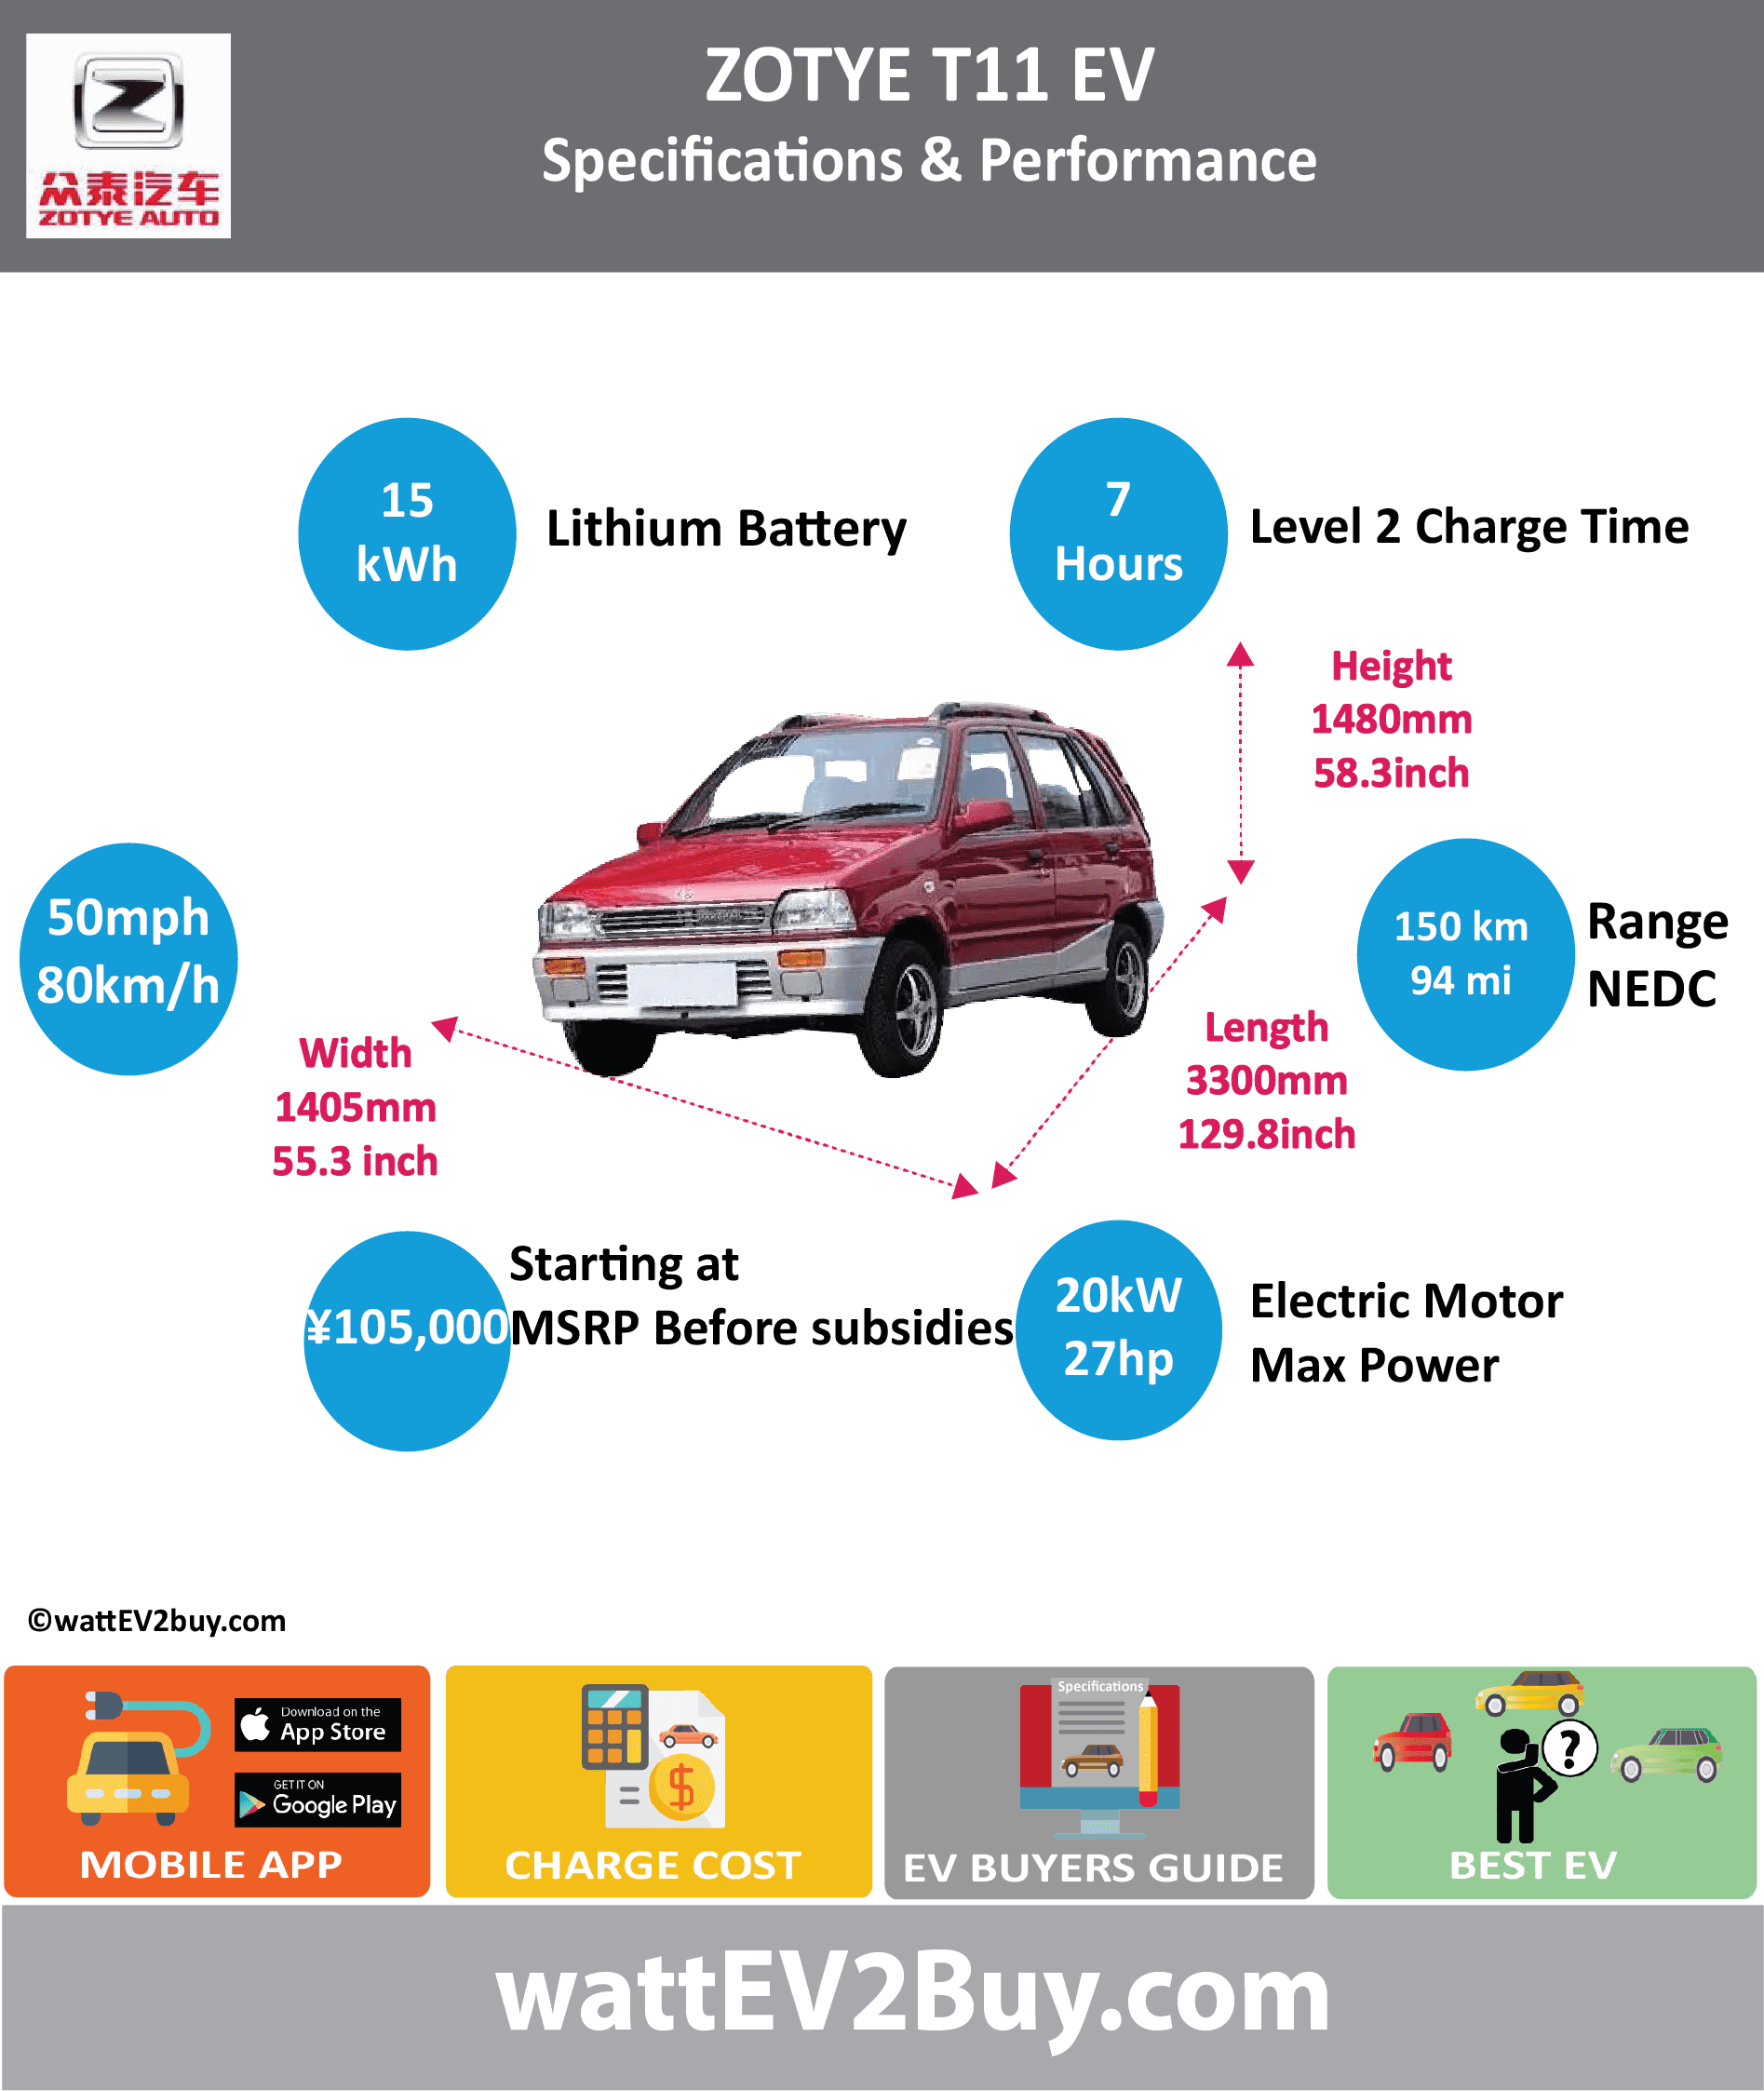 Zotye T11 EV Specs	 wattev2Buy.com	2015 Battery Chemistry	ternary  Battery Capacity kWh	15 Battery Nominal rating kWh	 Voltage V	3.6 Amps Ah	2.6 Cells	 Modules	 Efficiency	 Weight (kg)	109 Cell Type	 SOC	 Cooling	 Cycles	 Battery Type	 Depth of Discharge (DOD)	 Energy Density Wh/kg	 Battery Manufacturer	 Battery Warranty - years	 Battery Warranty - km	 Battery Warranty - miles	 Battery Electric Range - at constant 38mph	 Battery Electric Range - at constant 60km/h	 Battery Electric Range - NEDC Mi	93.75 Battery Electric Range - NEDC km	150 Battery Electric Range - CCM Mi	 Battery Electric Range - CCM km	 Battery Electric Range - EPA Mi	 Battery Electric Range - EPA km	 Electric Top Speed - mph	50 Electric Top Speed - km/h	80 Acceleration 0 - 100km/h sec	 Acceleration 0 - 50km/h sec	 Acceleration 0 - 62mph sec	 Acceleration 0 - 60mph sec	 Acceleration 0 - 37.2mph sec	 Wireless Charging	 Direct Current Fast Charge kW	 Charger Efficiency	 Onboard Charger kW	 Onboard Charger Optional kW	 Charging Cord - amps	 Charging Cord - volts	 LV 1 Charge kW	 LV 1 Charge Time (Hours)	 LV 2 Charge kW	 LV 2 Charge Time (Hours)	7 LV 3 CCS/Combo kW	 LV 3 Charge Time (min to 70%)	 LV 3 Charge Time (min to 80%)	 LV 3 Charge Time (mi)	 LV 3 Charge Time (km)	 Supercharger	 Charging System kW	 Charger Output	 Charge Connector	 Power Outlet kW	 Power Outlet Amps	 MPGe Combined - miles	 MPGe Combined - km	 MPGe City - miles	 MPGe City - km	 MPGe Highway - miles	 MPGe Highway - km	 Max Power - hp (Electric Max)	27 Max Power - kW  (Electric Max)	20 Max Torque - lb.ft  (Electric Max)	 Max Torque - N.m  (Electric Max)	110 Drivetrain	 Generator	 Motor Type	 Electric Motor Manufacturer	Hunan Jiangnan Automobile Manufacturing Co., Ltd Electric Motor Output kW	 Electric Motor Output hp	 Transmission	 Electric Motor - Rear	 Max Power - hp (Rear)	 Max Power - kW (Rear)	 Max Torque - lb.ft (Rear)	 Max Torque - N.m (Rear)	 Electric Motor - Front	 Max Power - hp (Front)	 Max Power - kW (Front)	 Max Torque - lb.ft (Front)	 Max Torque - N.m (Front)	 Energy Consumption kWh/100km	 Energy Consumption kWh/100miles	 Deposit	 GB Battery Lease per month	 EU Battery Lease per month	 MSRP (expected)	 EU MSRP (before incentives & destination)	 GB MSRP (before incentives & destination)	 US MSRP (before incentives & destination)	 CHINA MSRP (before incentives & destination)	 ¥105,000.00  Local Currency MSRP	 MSRP after incentives	 Vehicle	 Trims	 Doors	 Seating	4 Dimensions	 Luggage (L)	 Luggage Max (L)	 GVWR (kg)	1040 GVWR (lbs)	 Curb Weight (kg)	710 Curb Weight (lbs)	 Payload Capacity (kg)	 Payload Capacity (lbs)	 Towing Capacity (lbs)	 Max Load Height (m)	 Ground Clearance (inc)	 Ground Clearance (mm)	 Lenght (mm)	3300 Width (mm)	1405 Height (mm)	1480 Wheelbase (mm)	2175 Lenght (inc)	129.8 Width (inc)	55.3 Height (inc)	58.2 Wheelbase (inc)	85.6 Other	 Utility Factor	 Auto Show Unveil	 Availability	 Market	 Segment	 LCD Screen (inch)	 Class	 Safety Level	 Unveiled	 Relaunch	 First Delivery	 Chassis designed	 Based On	 AKA	 Self-Driving System	 SAE Autonomous Level	 Connectivity	 Unique	 Extras	 Incentives	 Home Charge Installation	 Public Charging	 Subsidy	 Chinese Name	江南T11 Model Code	JNJ7000EVA11 WEBSITE